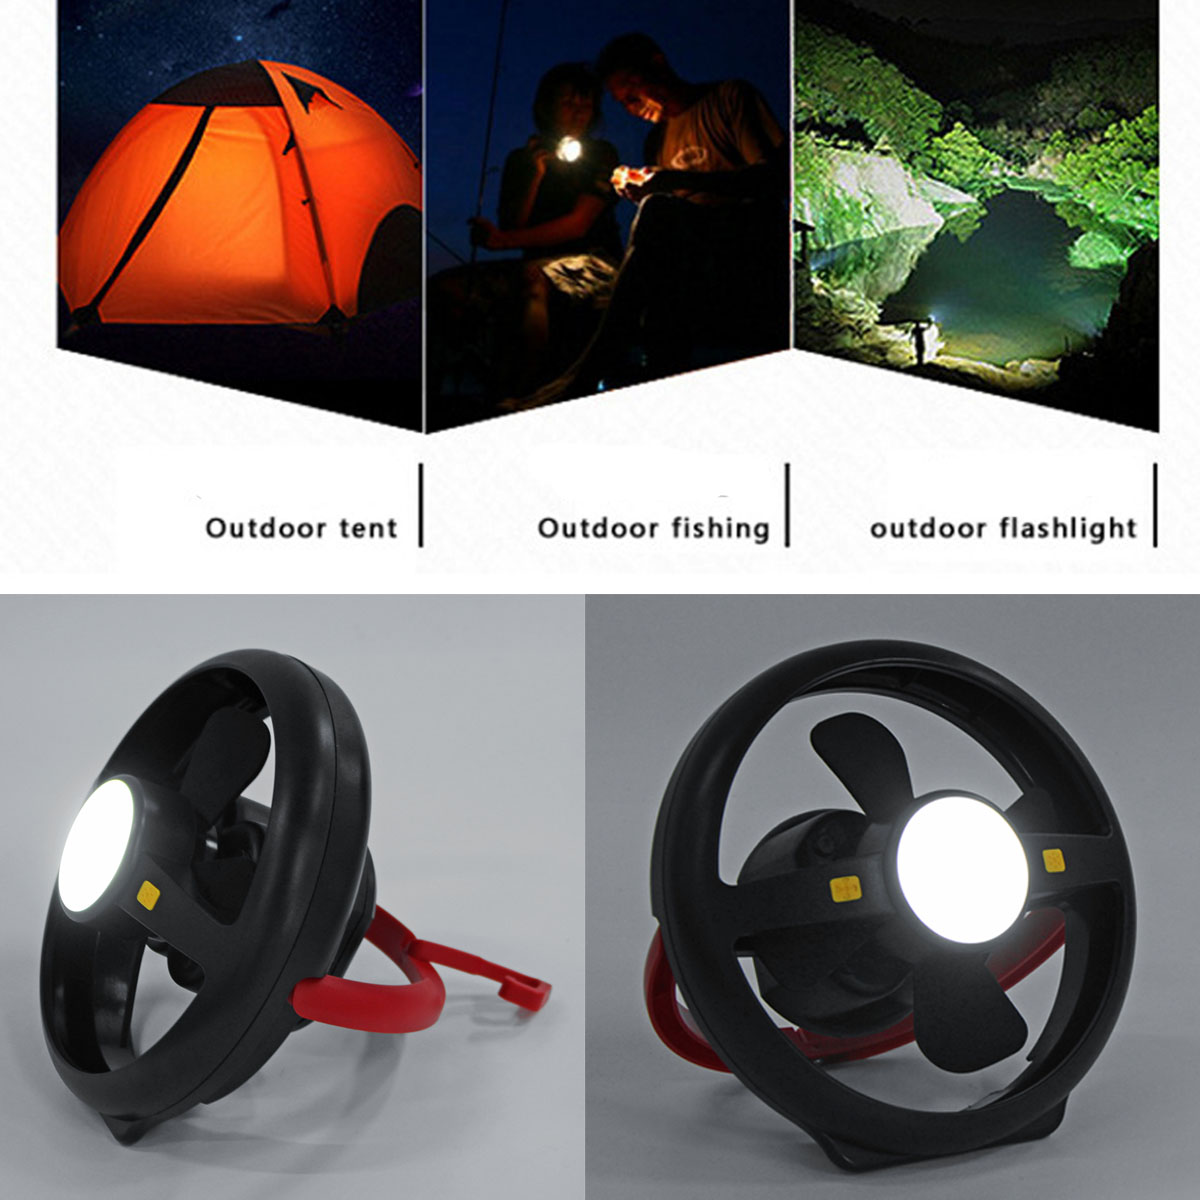 100LM Outdoor Camping Tent Fan Light Lamp Bulb LED USB Rechargeable Lantern Emergency Power Bank